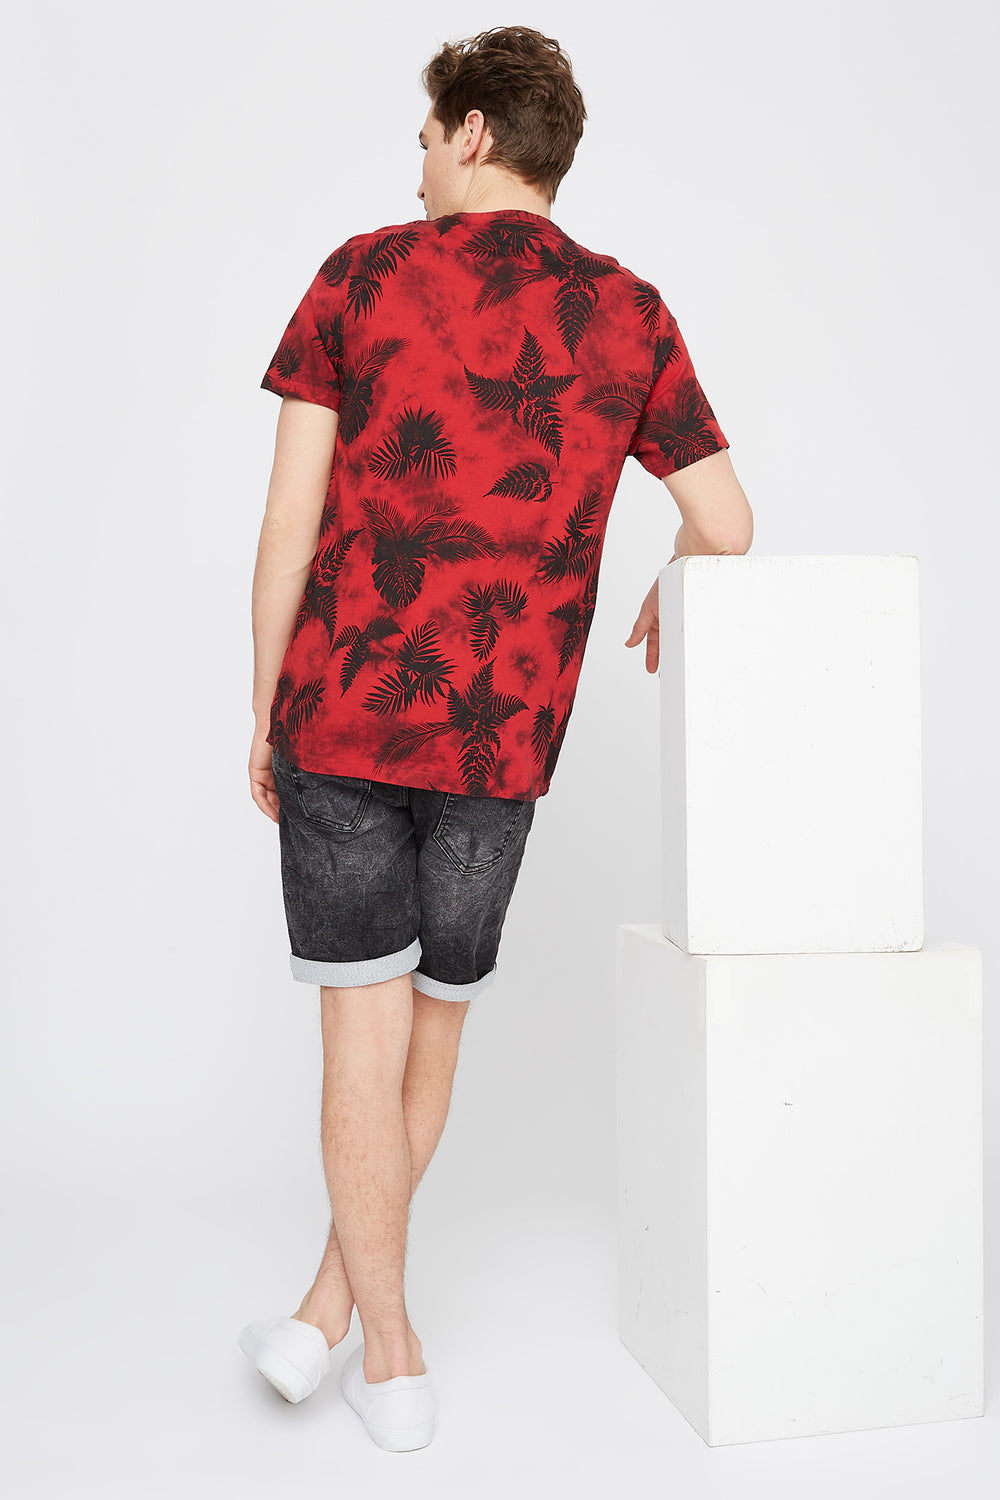 Tie-Dye Palm Leaf Printed T-Shirt Red